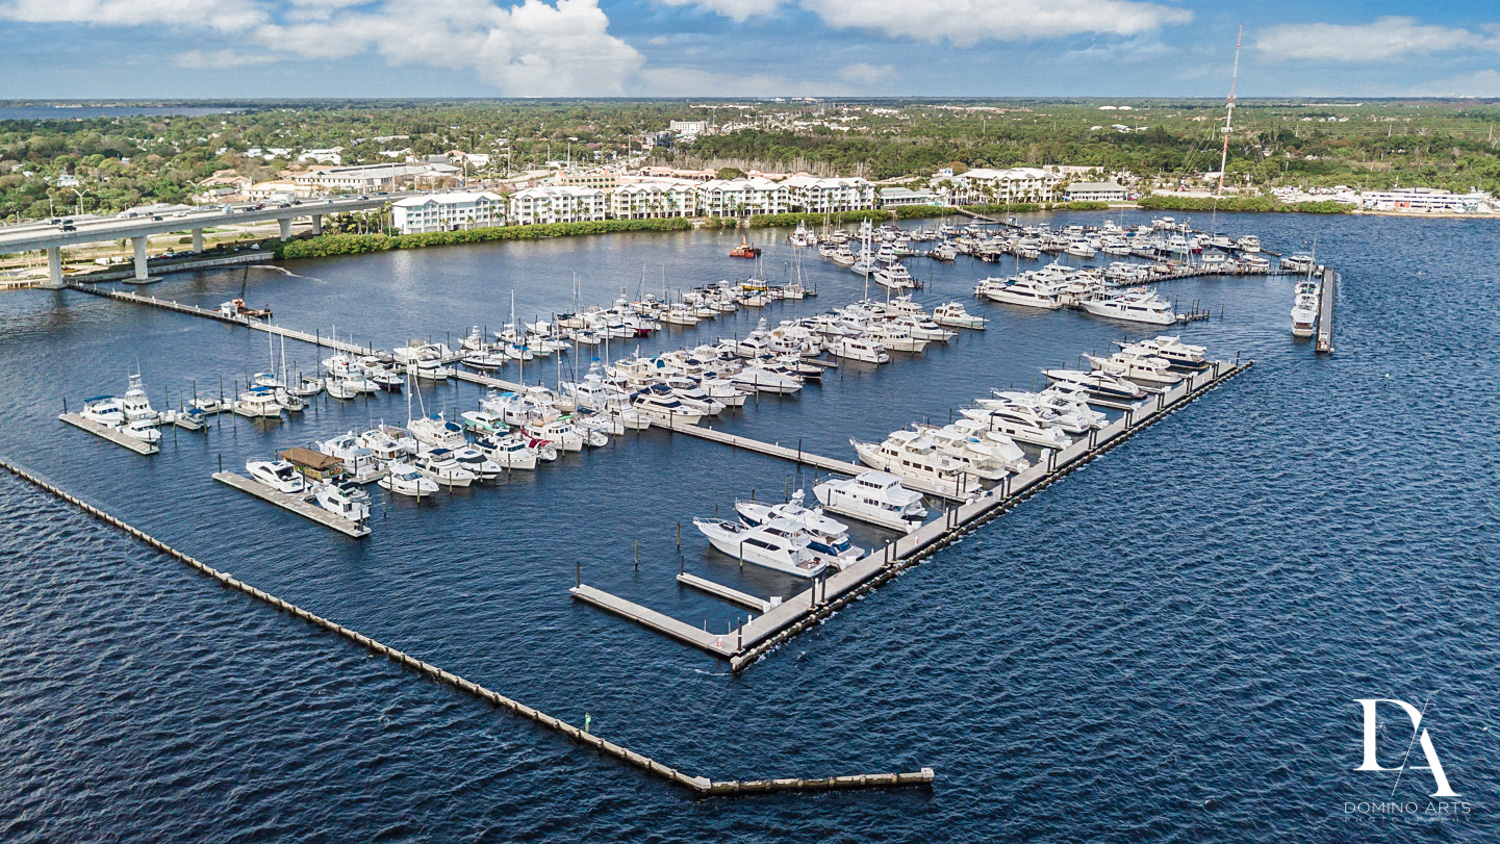 aerial view at Harborage Yacht Club & Marina by Domino Arts Photography